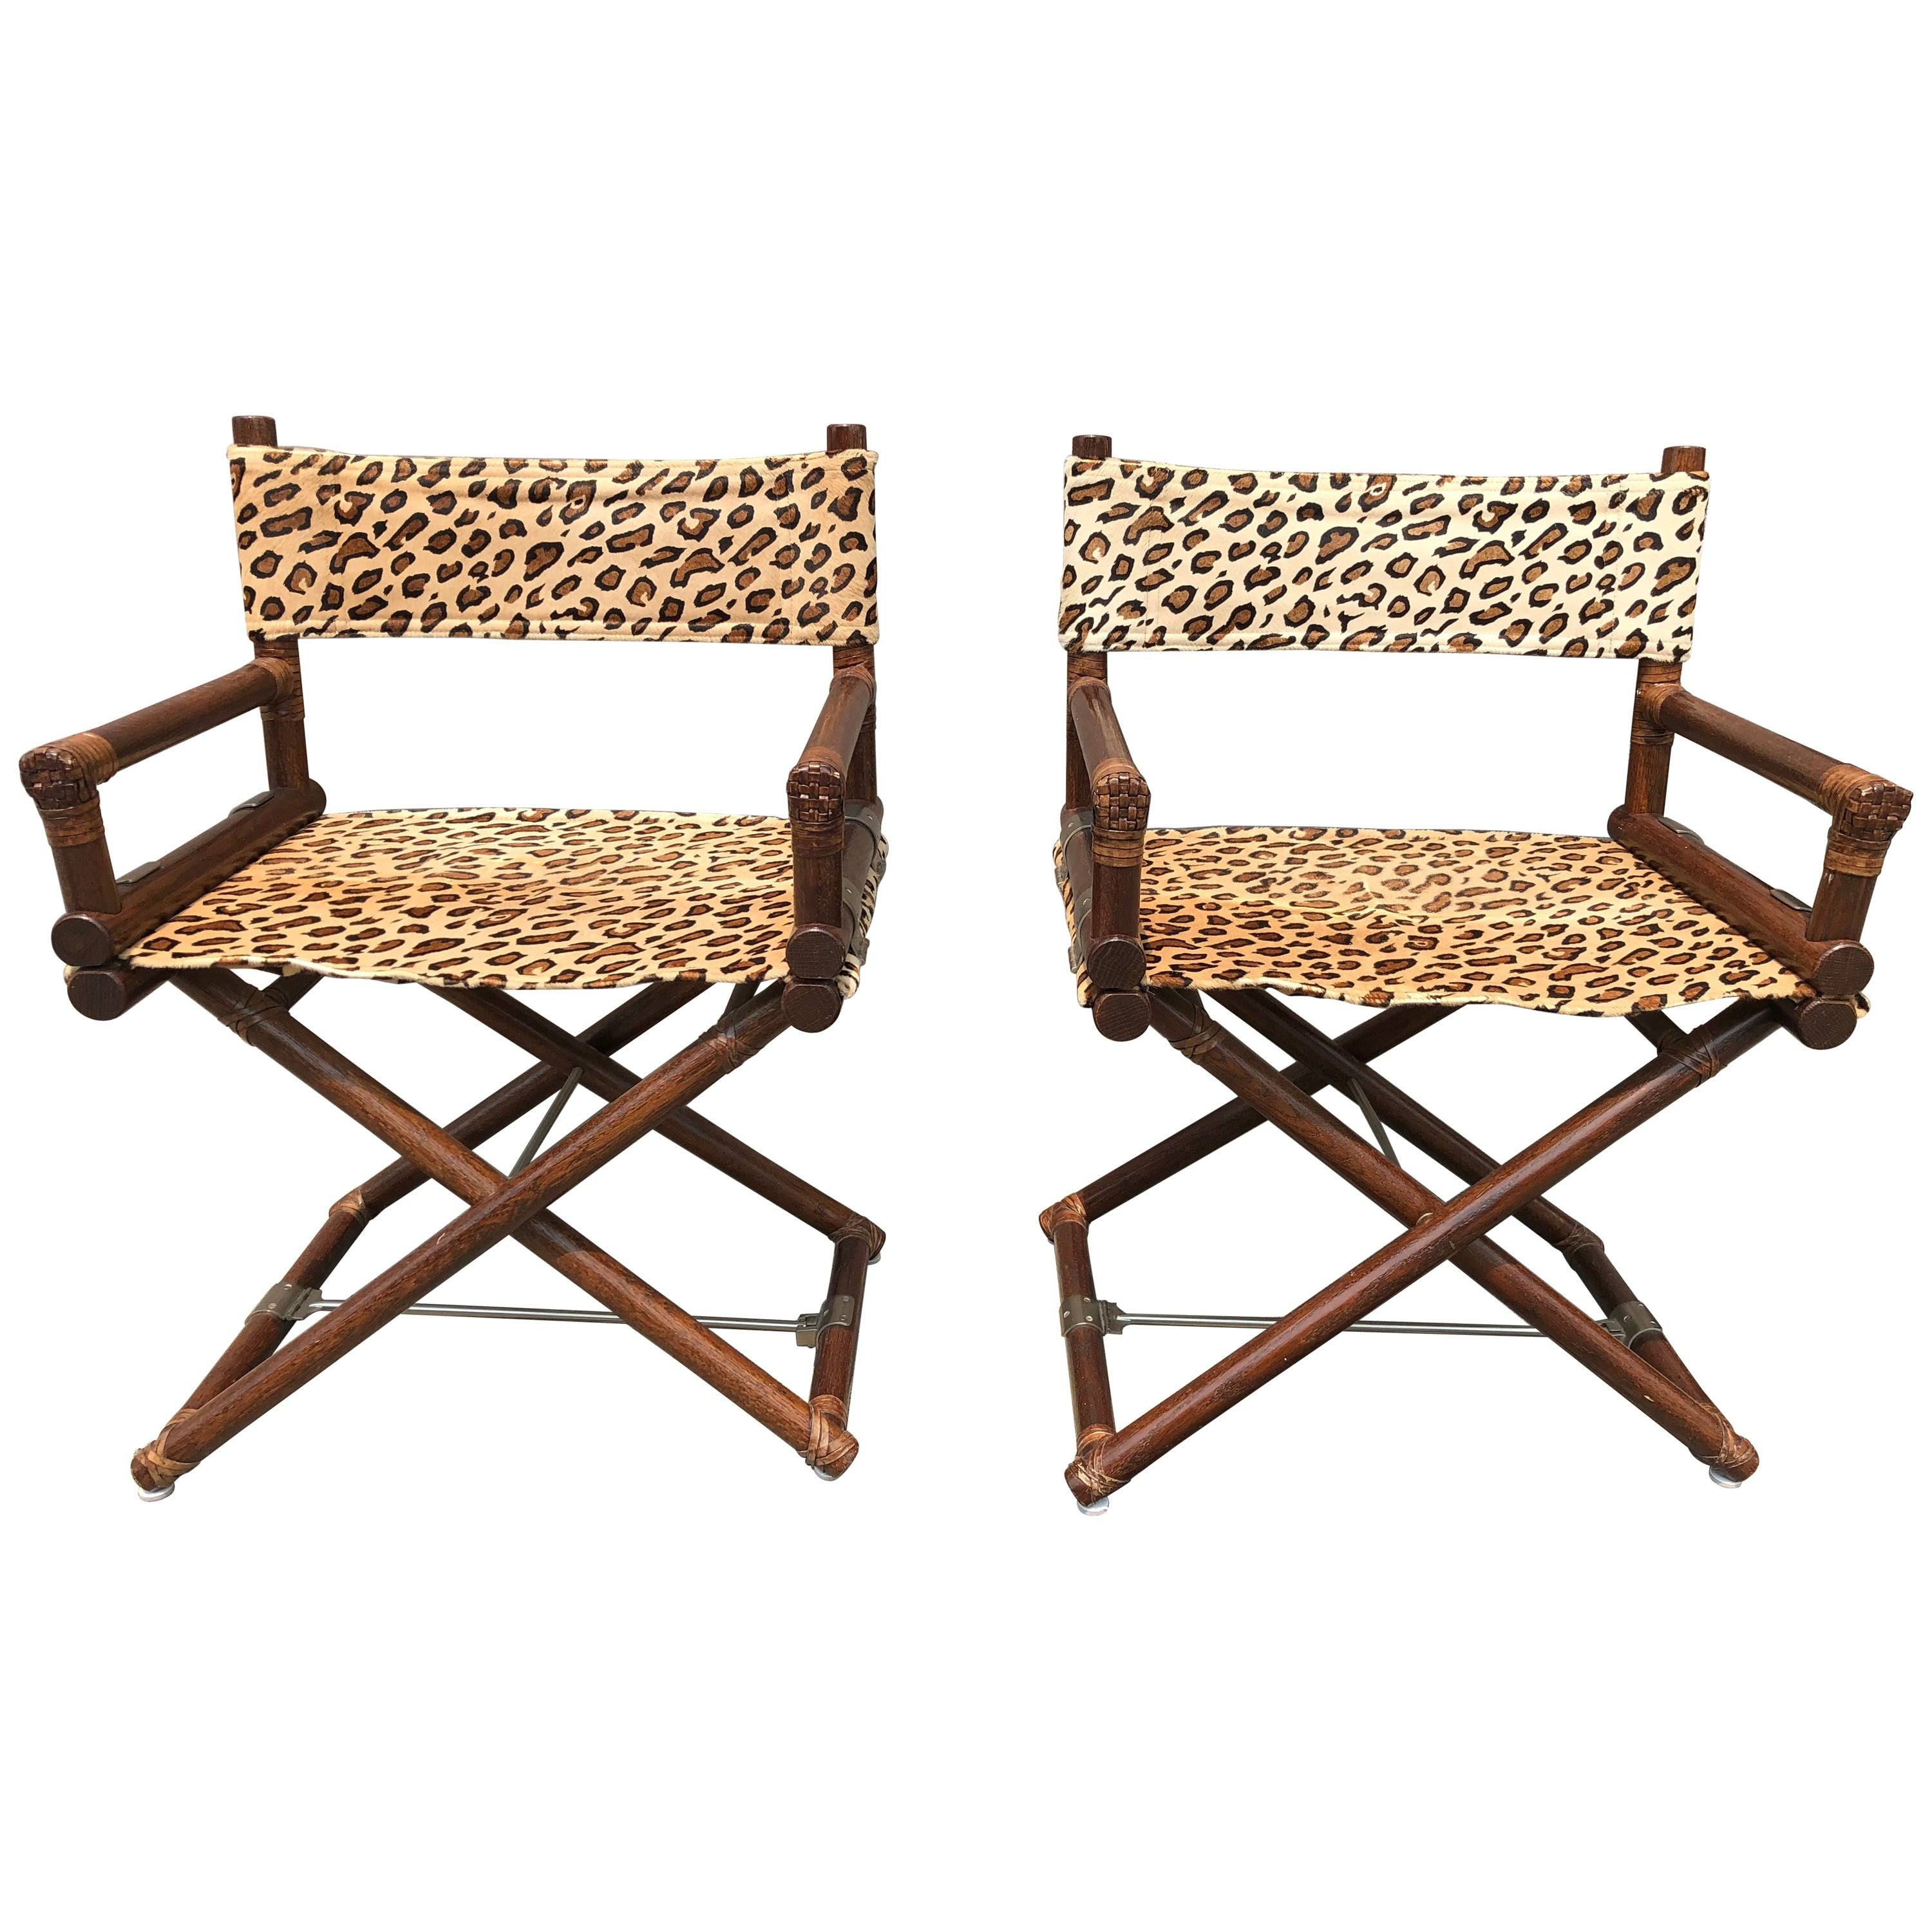 Mcguire animal print campaign chairs a pair for sale at 1stdibs